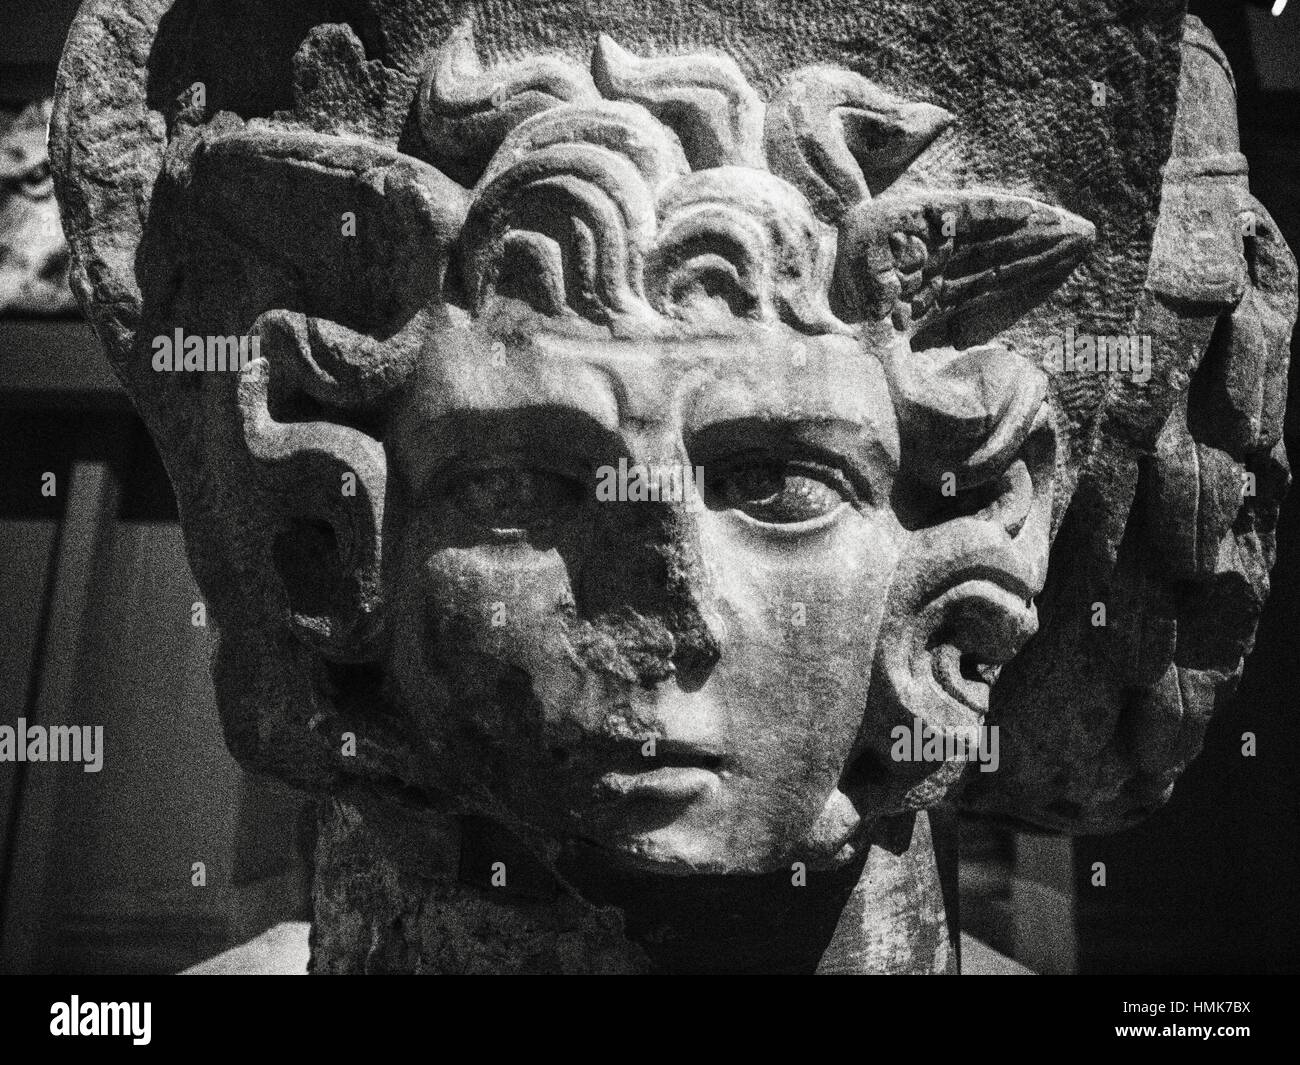 Capital Column. Early Roman Period. Classic collection. Archaeology Museum. Istanbul. Turkey. - Stock Image